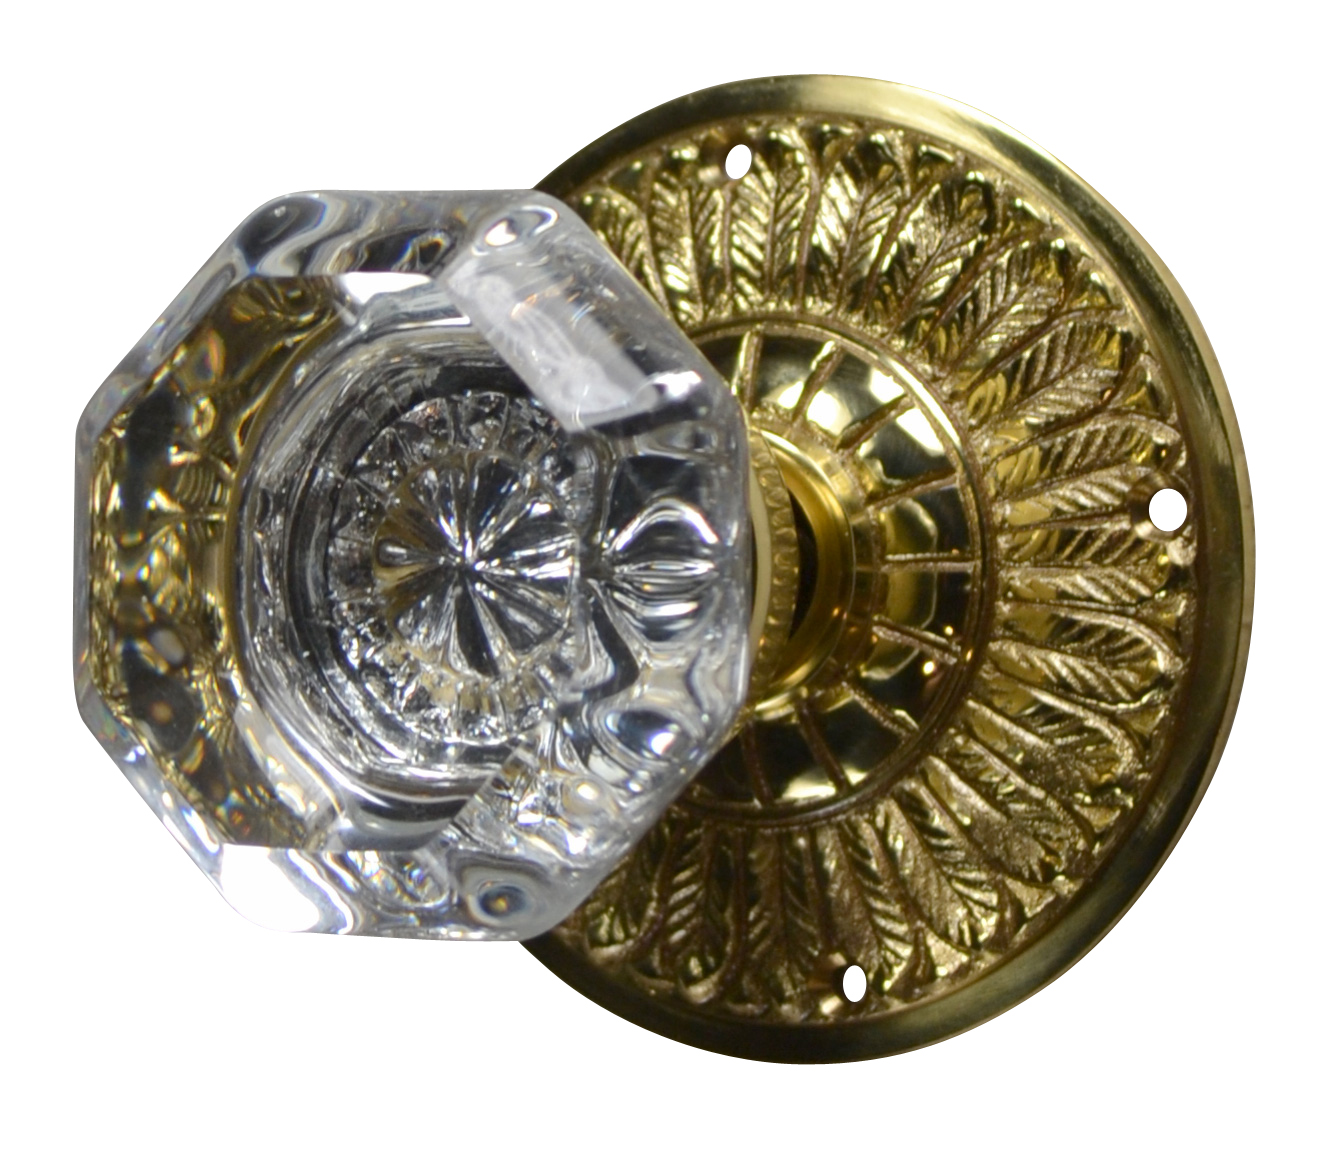 Feathers Crystal Octagon Door Knob (Polished Brass Finish)